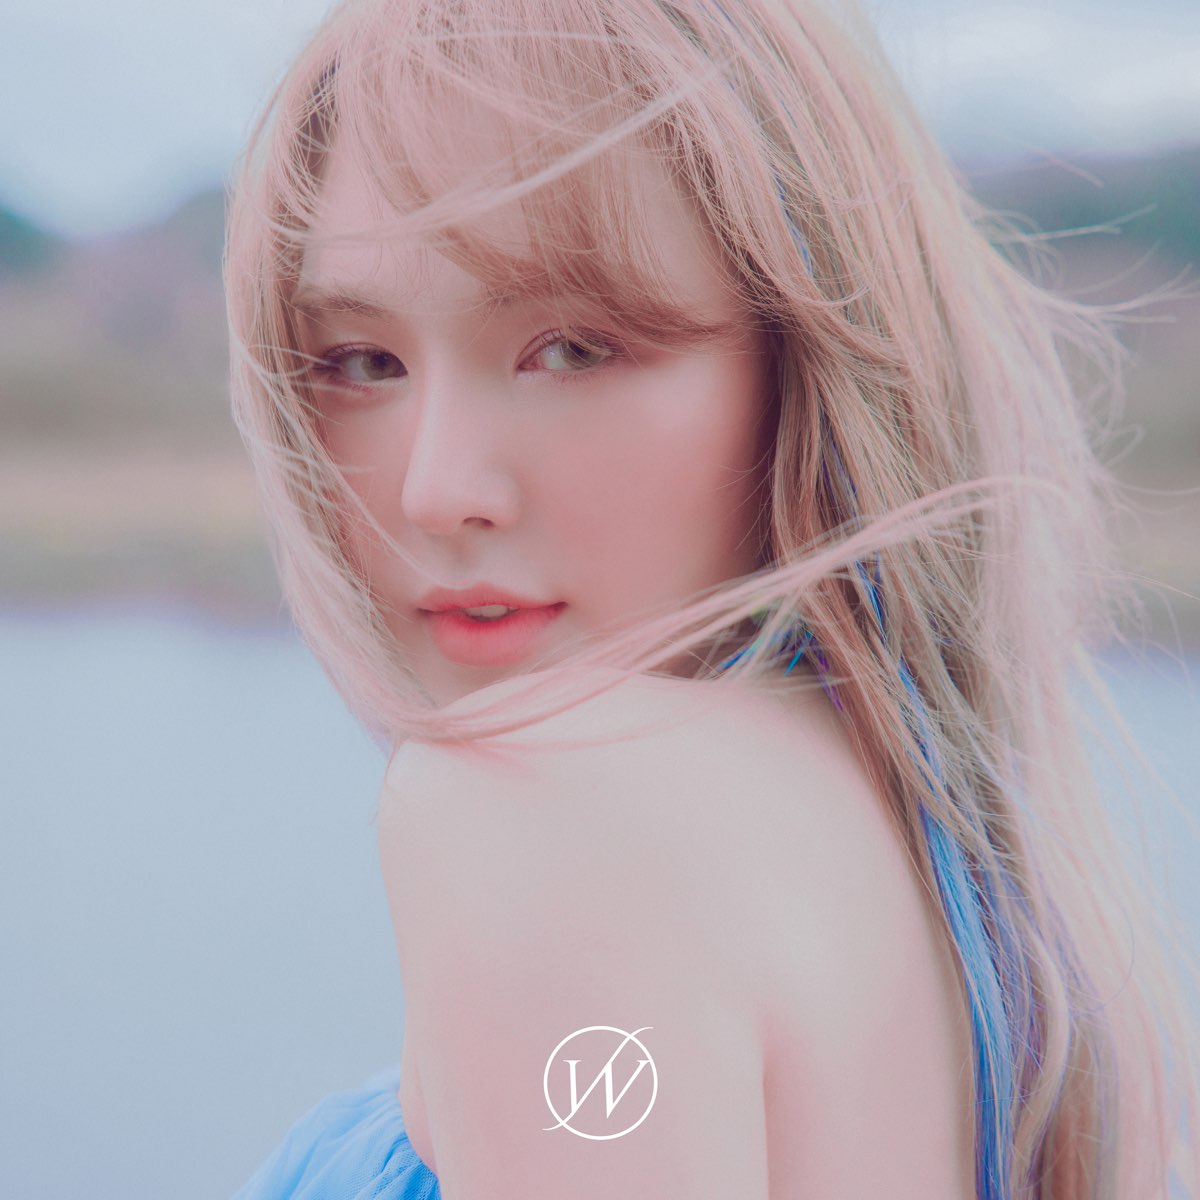 Like Water - The 1st Mini Album - EP by WENDY on Apple Music